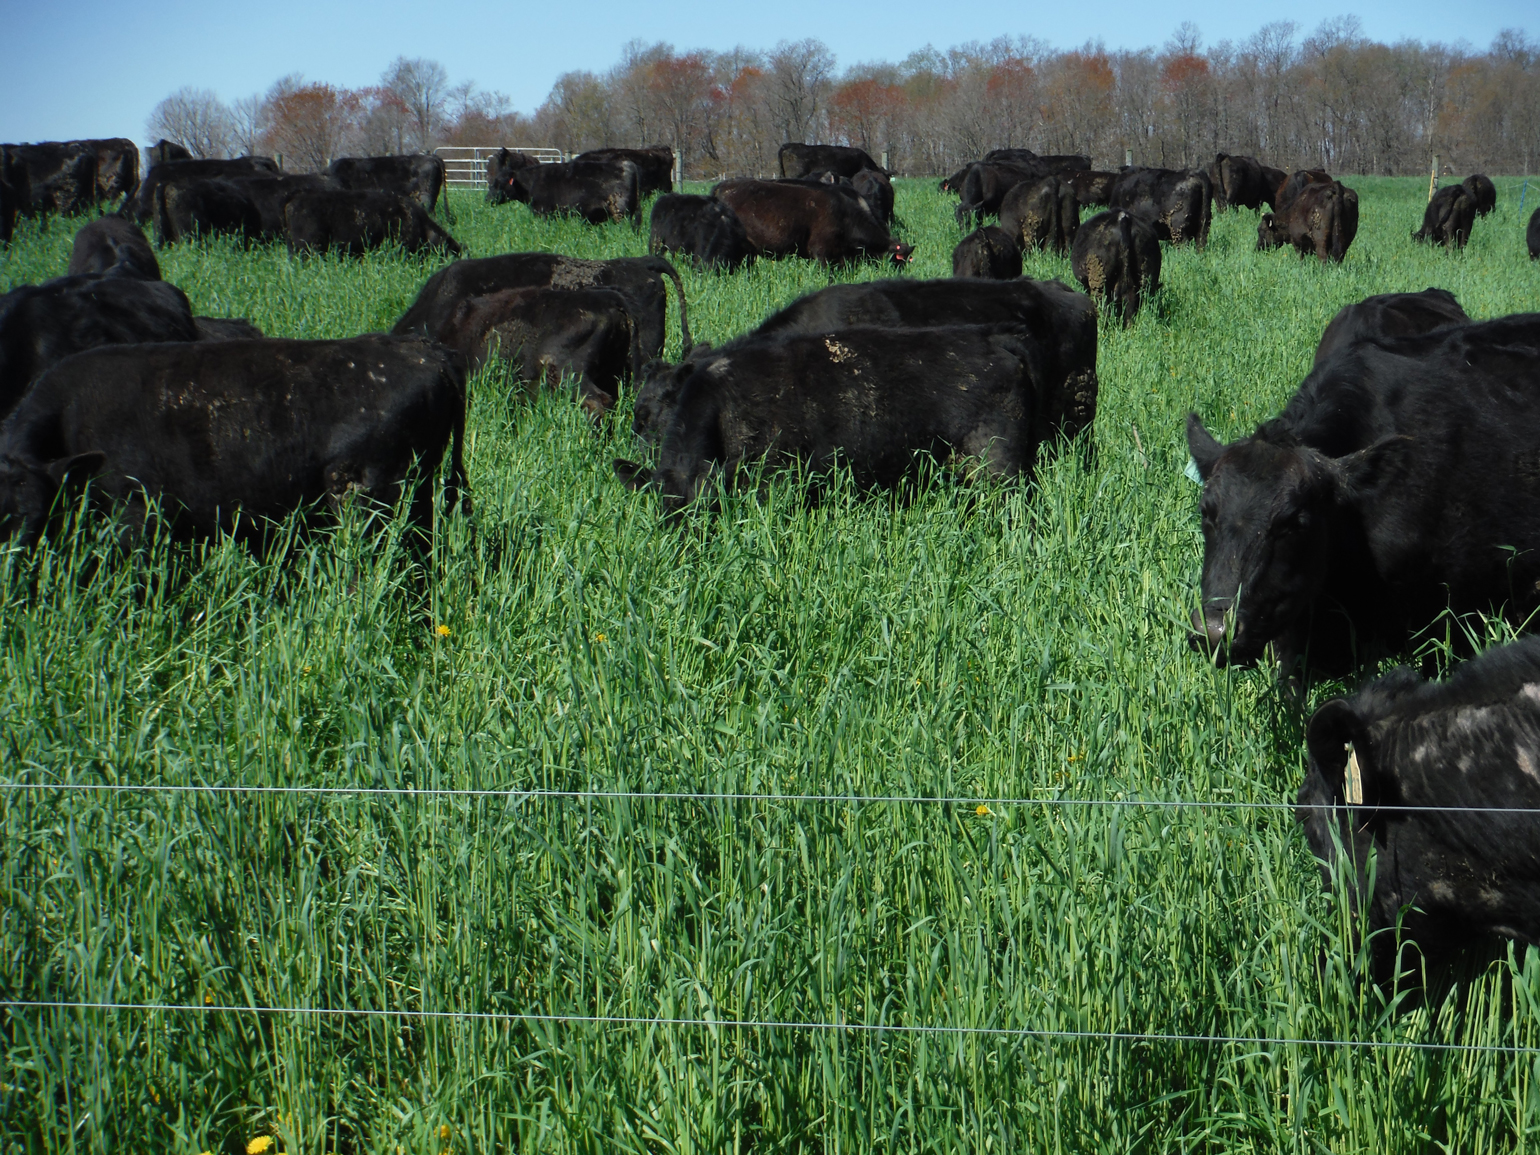 Wilson's cattle graze in a paddock of lush green grass